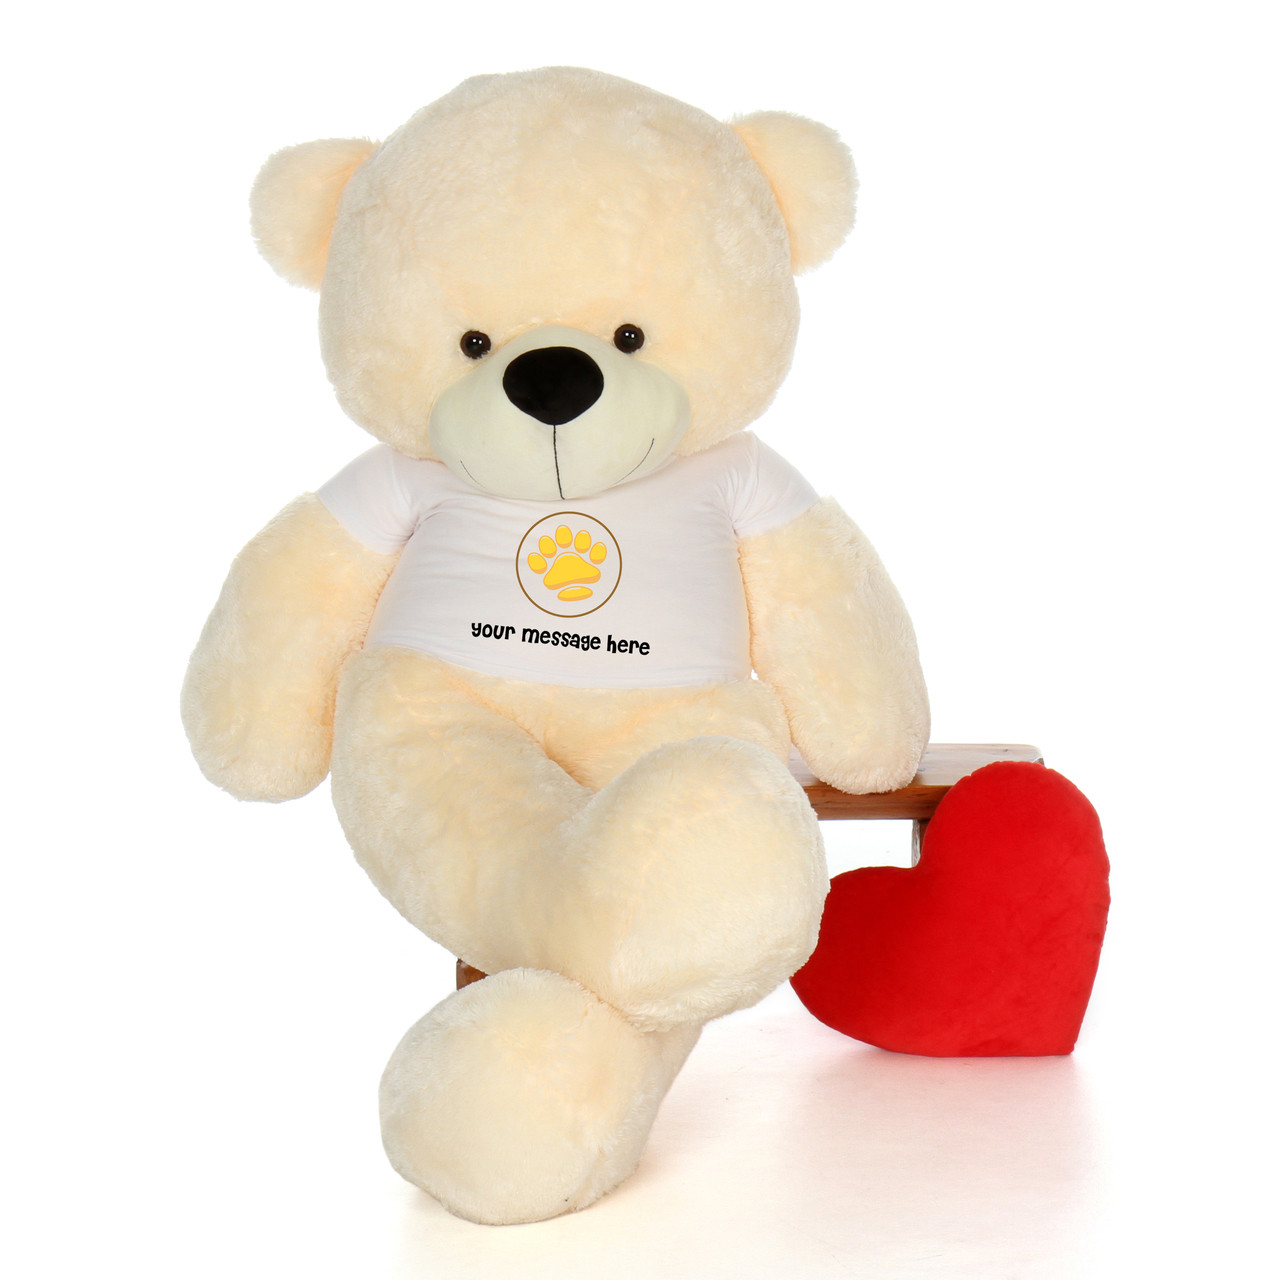 6ft life size personalized teddy bears customize message and your fur color - Giant Teddy Bears For Valentines Day